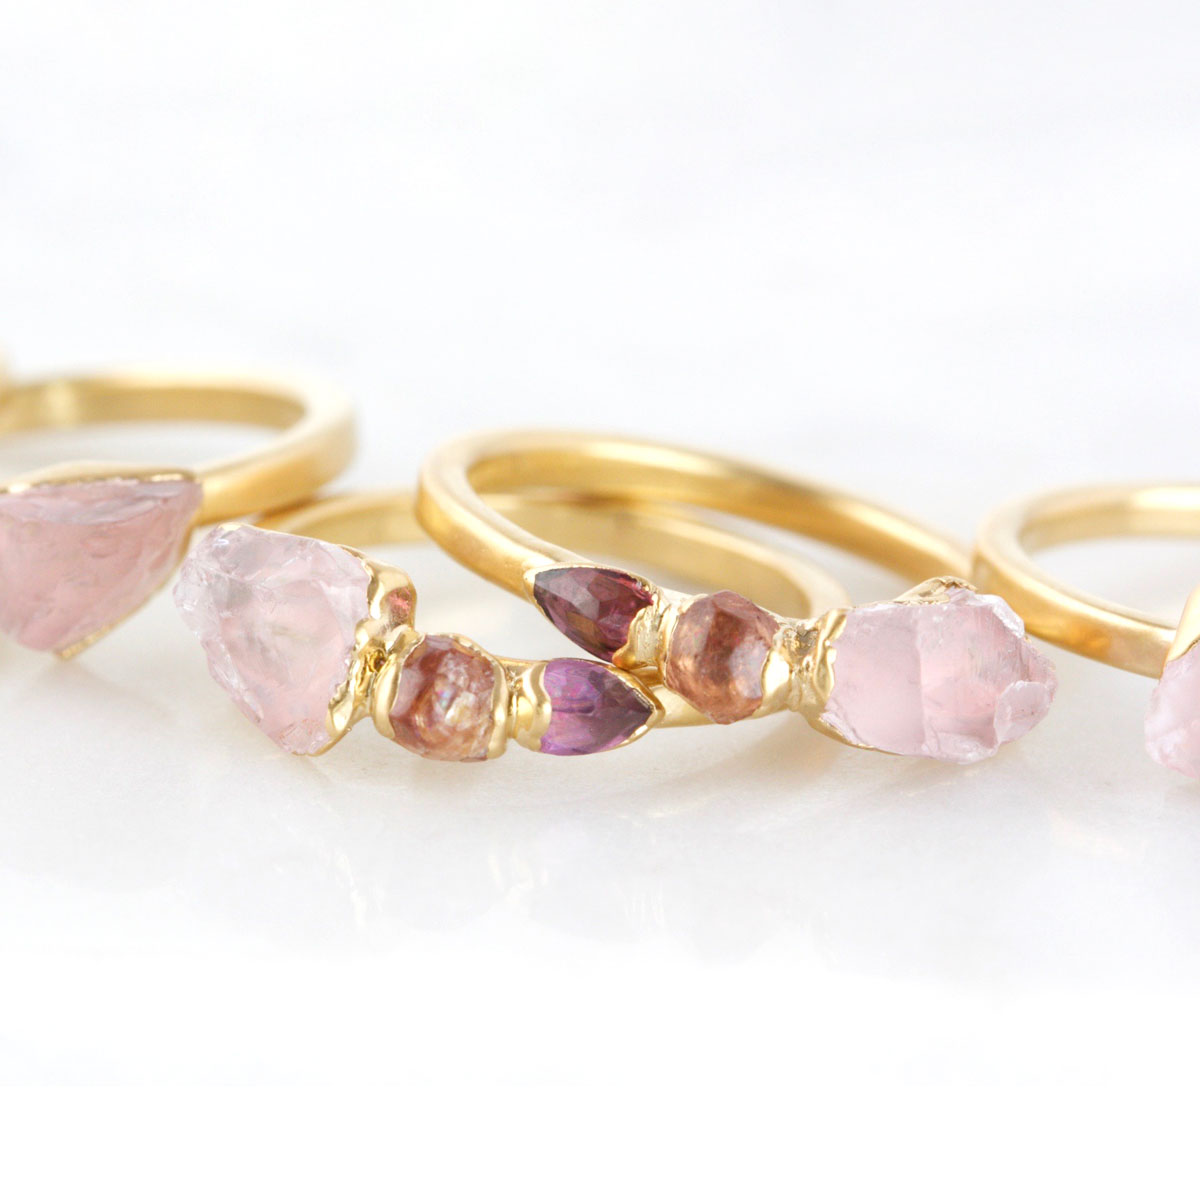 Dani Barbe Unique Gemstones Morganite Jewelry